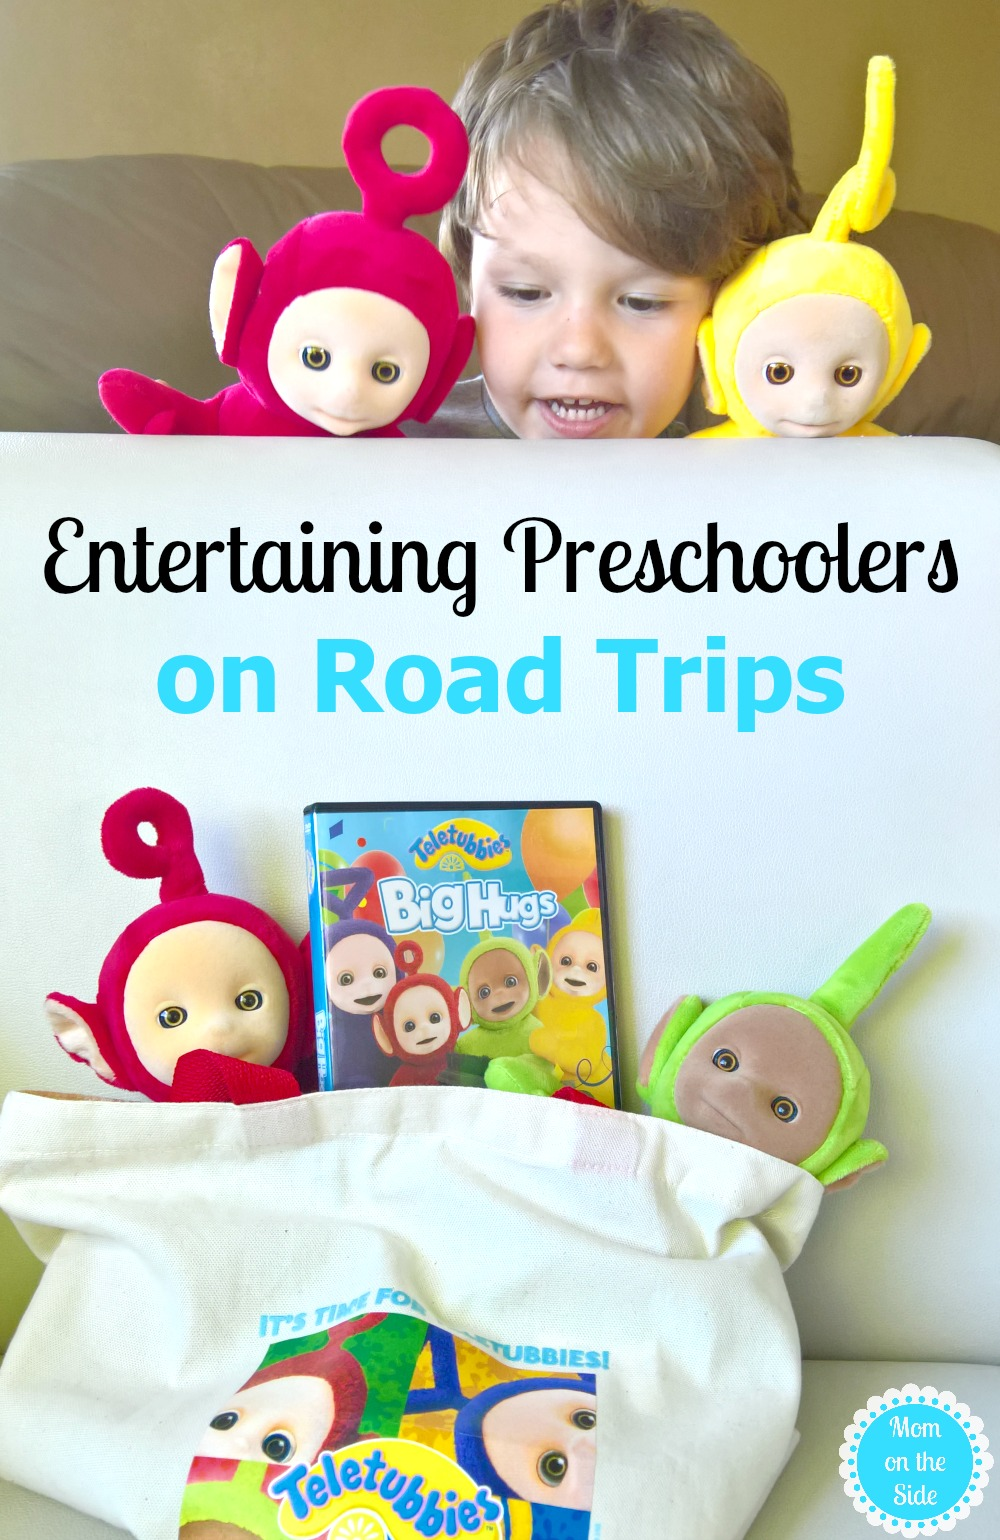 Tips for Entertaining Preschoolers on Road Trips